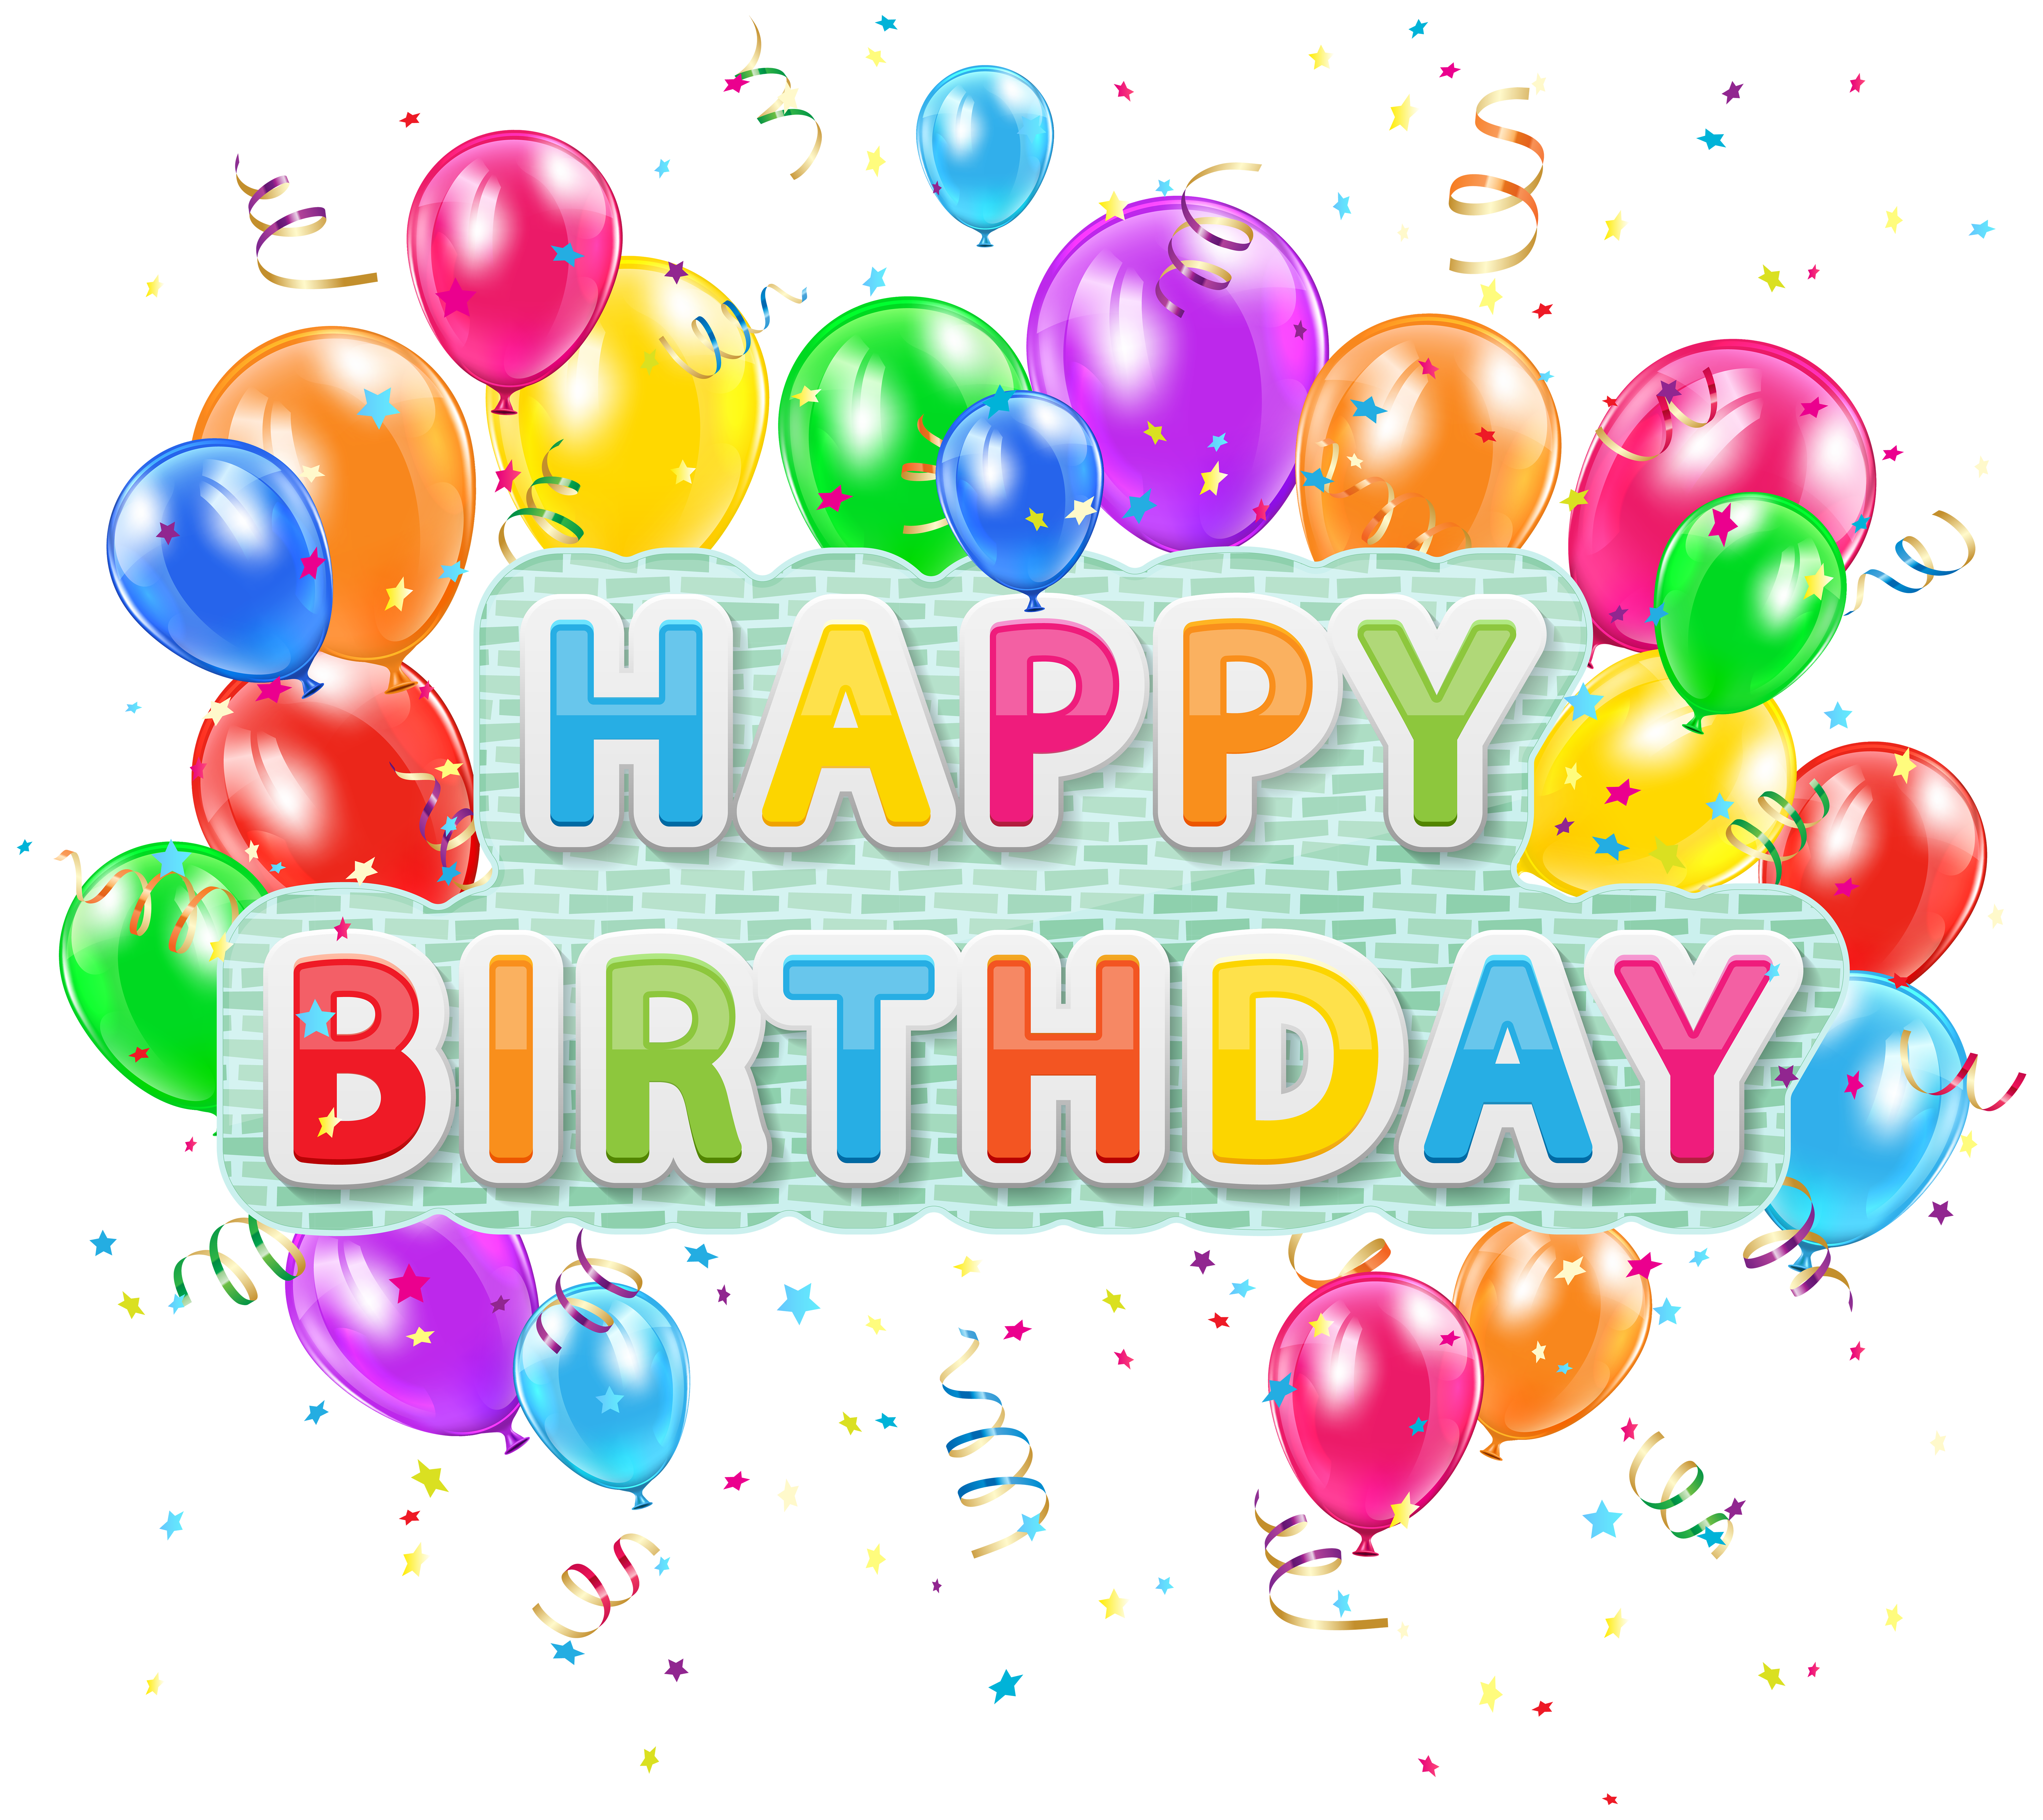 Happy birthday text art clipart image transparent library Pin by Sonika Dippenaar on Pics to use | Birthday animated gif ... image transparent library